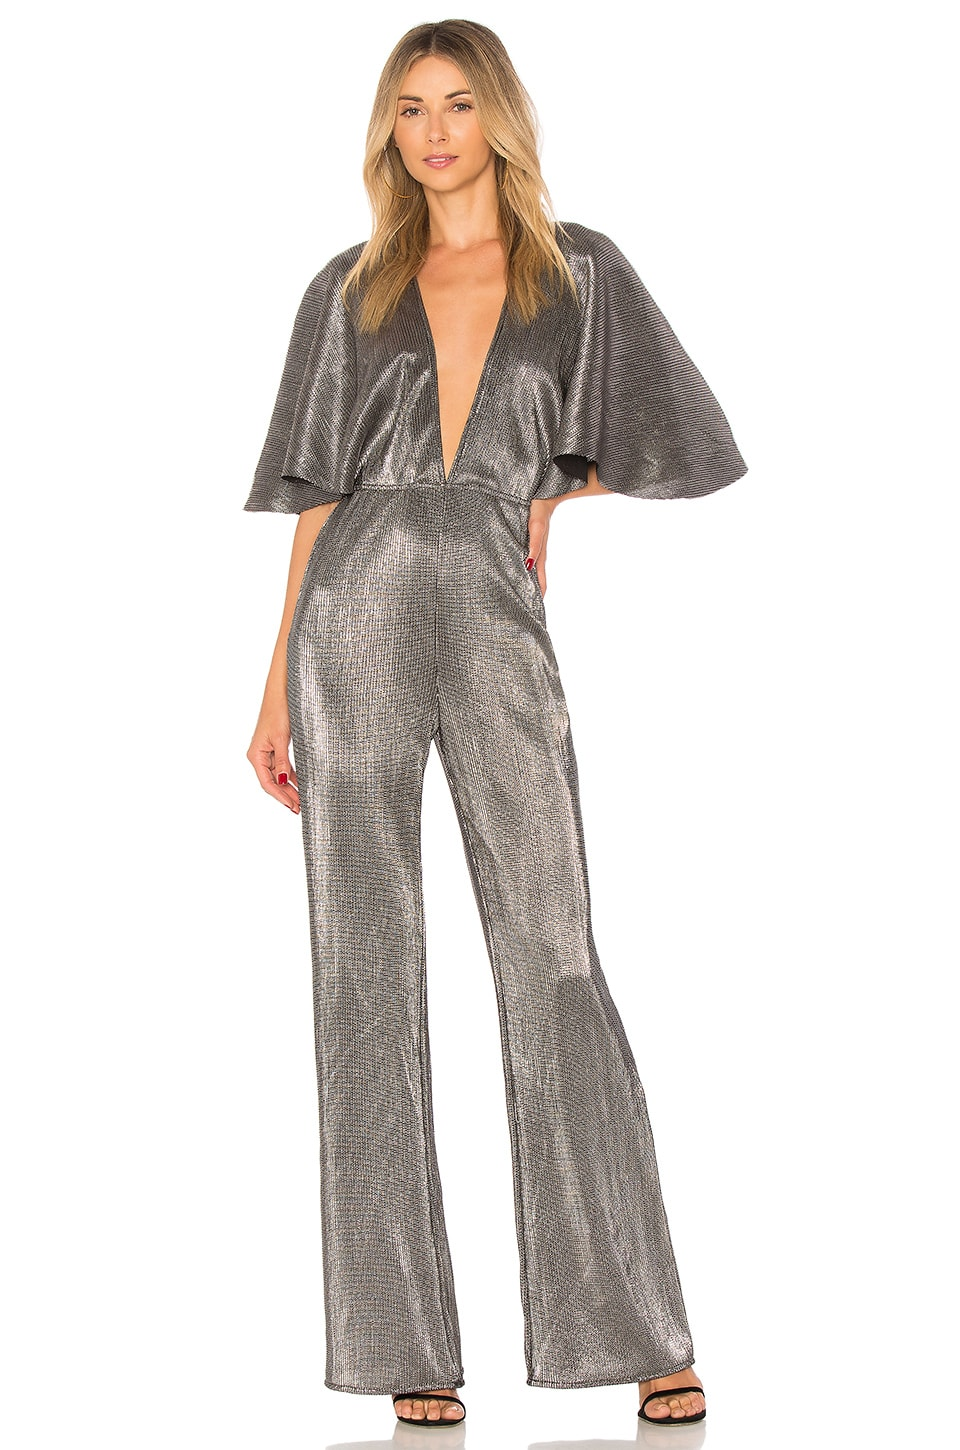 Lovers + Friends Harper Jumpsuit in Silver